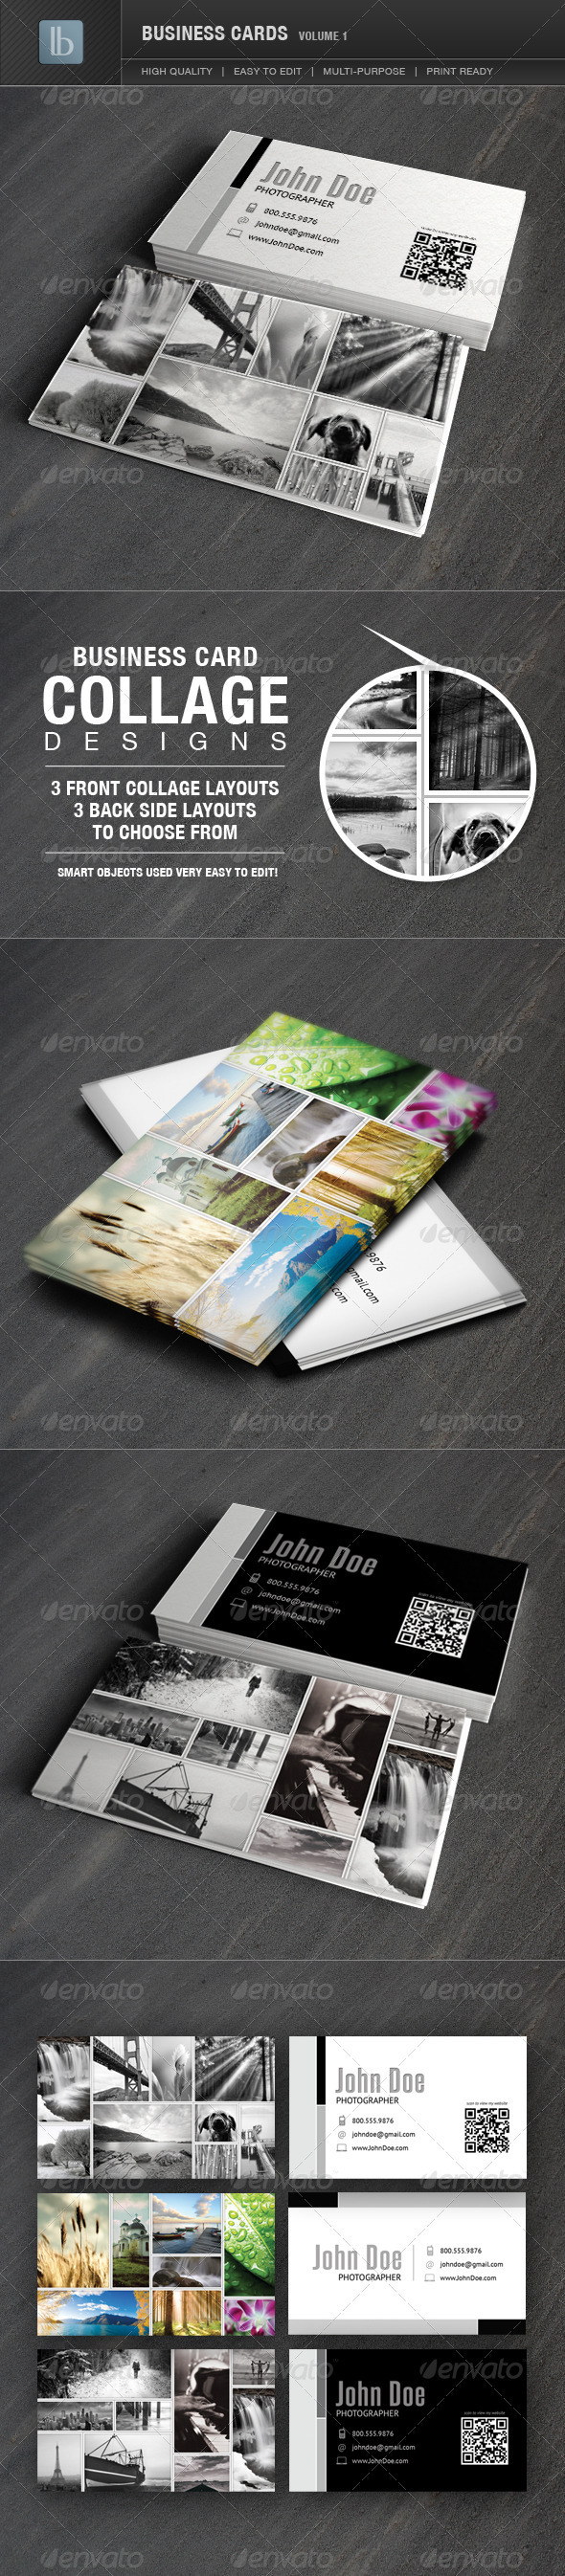 GraphicRiver Business Cards Volume 1 2257352